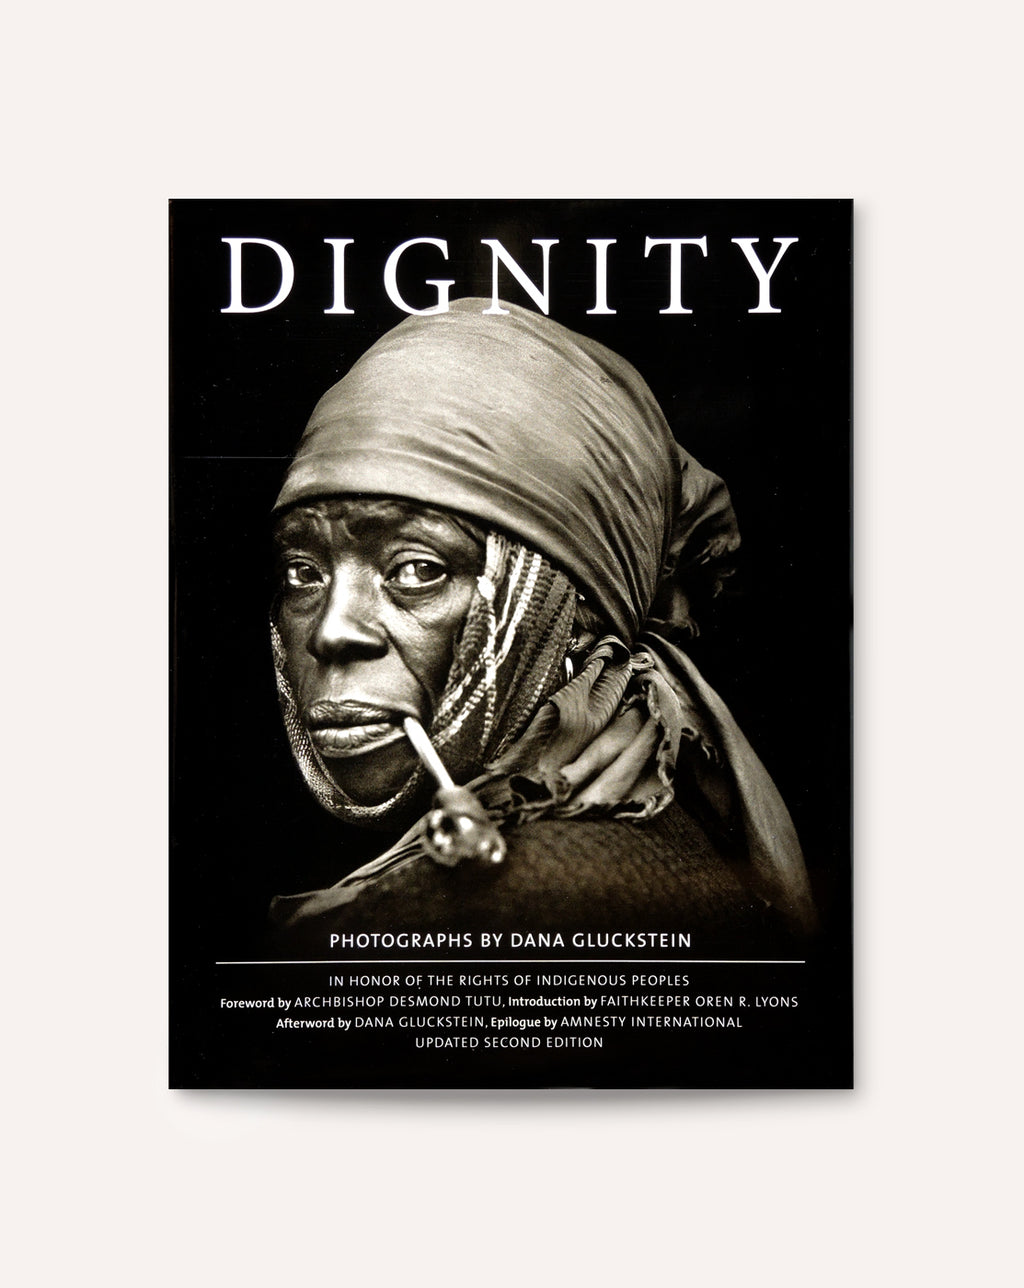 DIGNITY: In Honor of the Rights of Indigenous Peoples